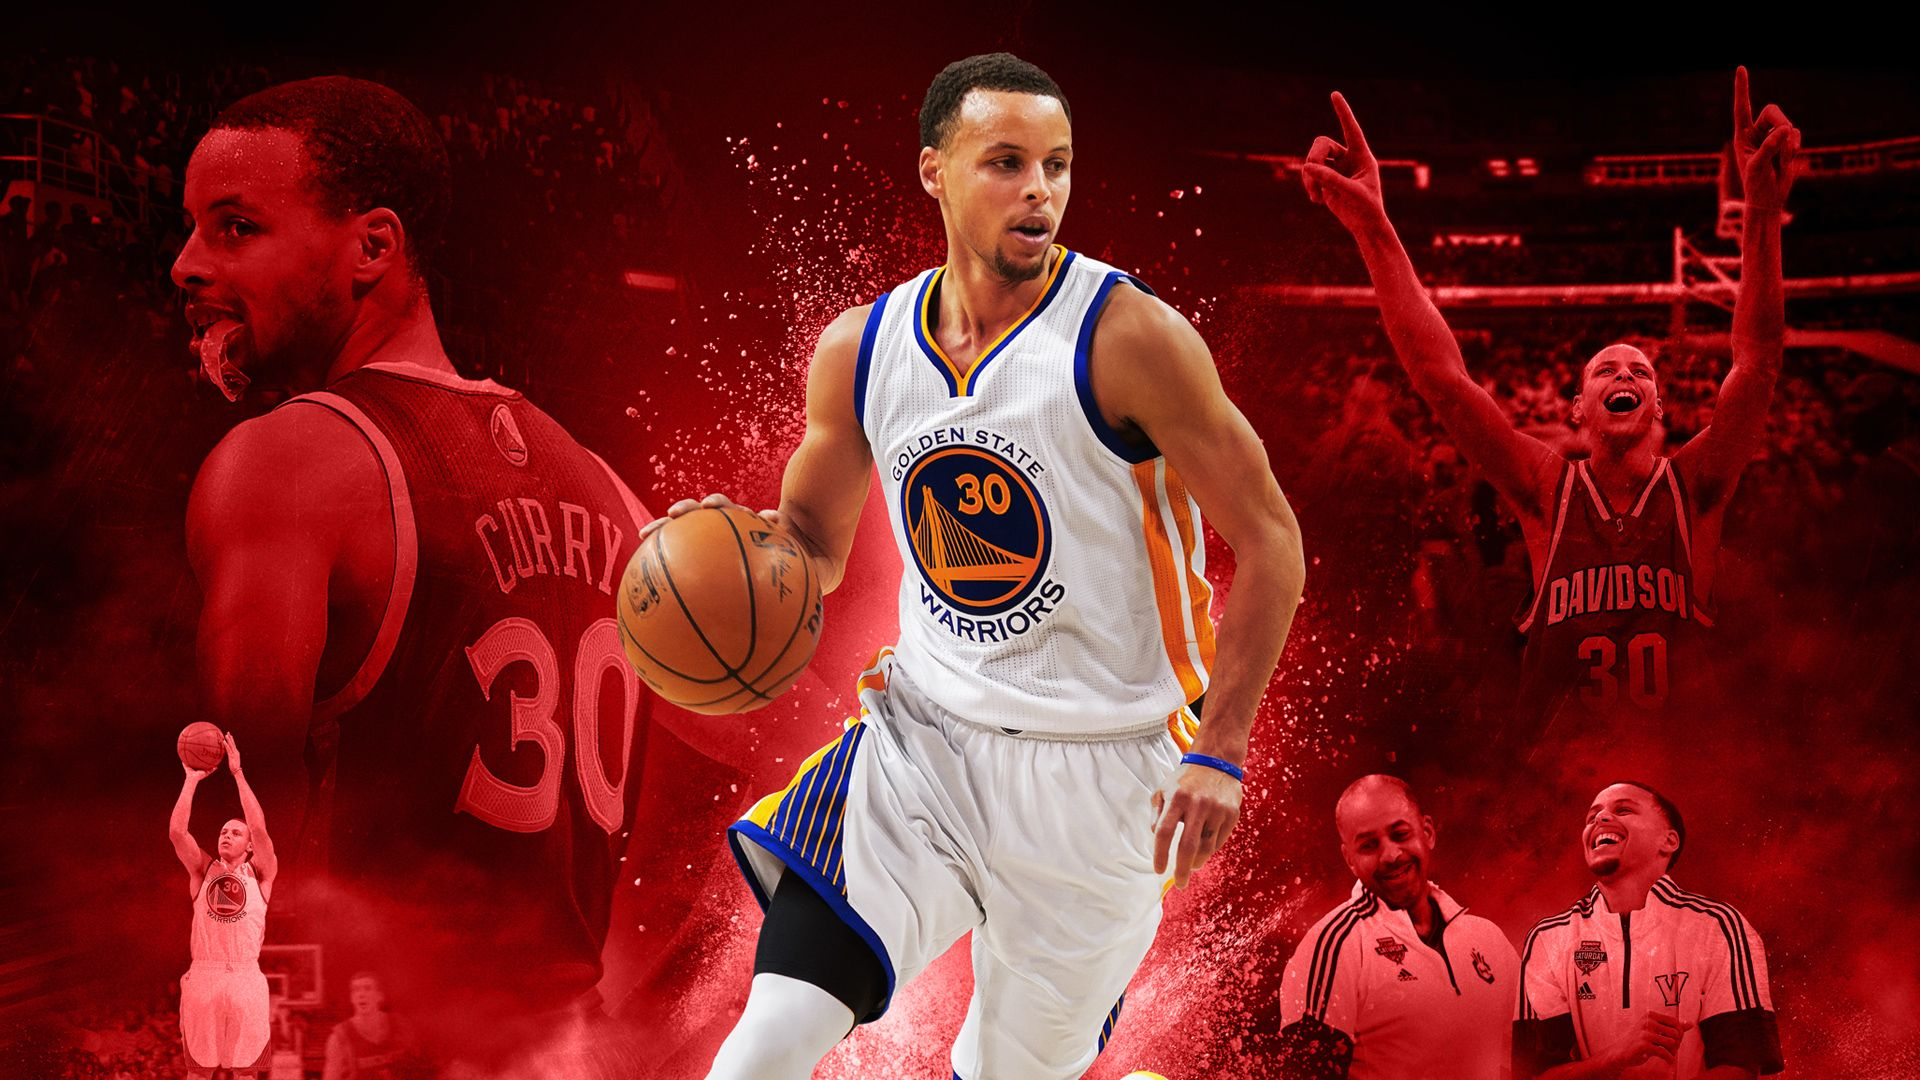 Download NBA 2k16 mod apk for both android and PC to enjoy the Most